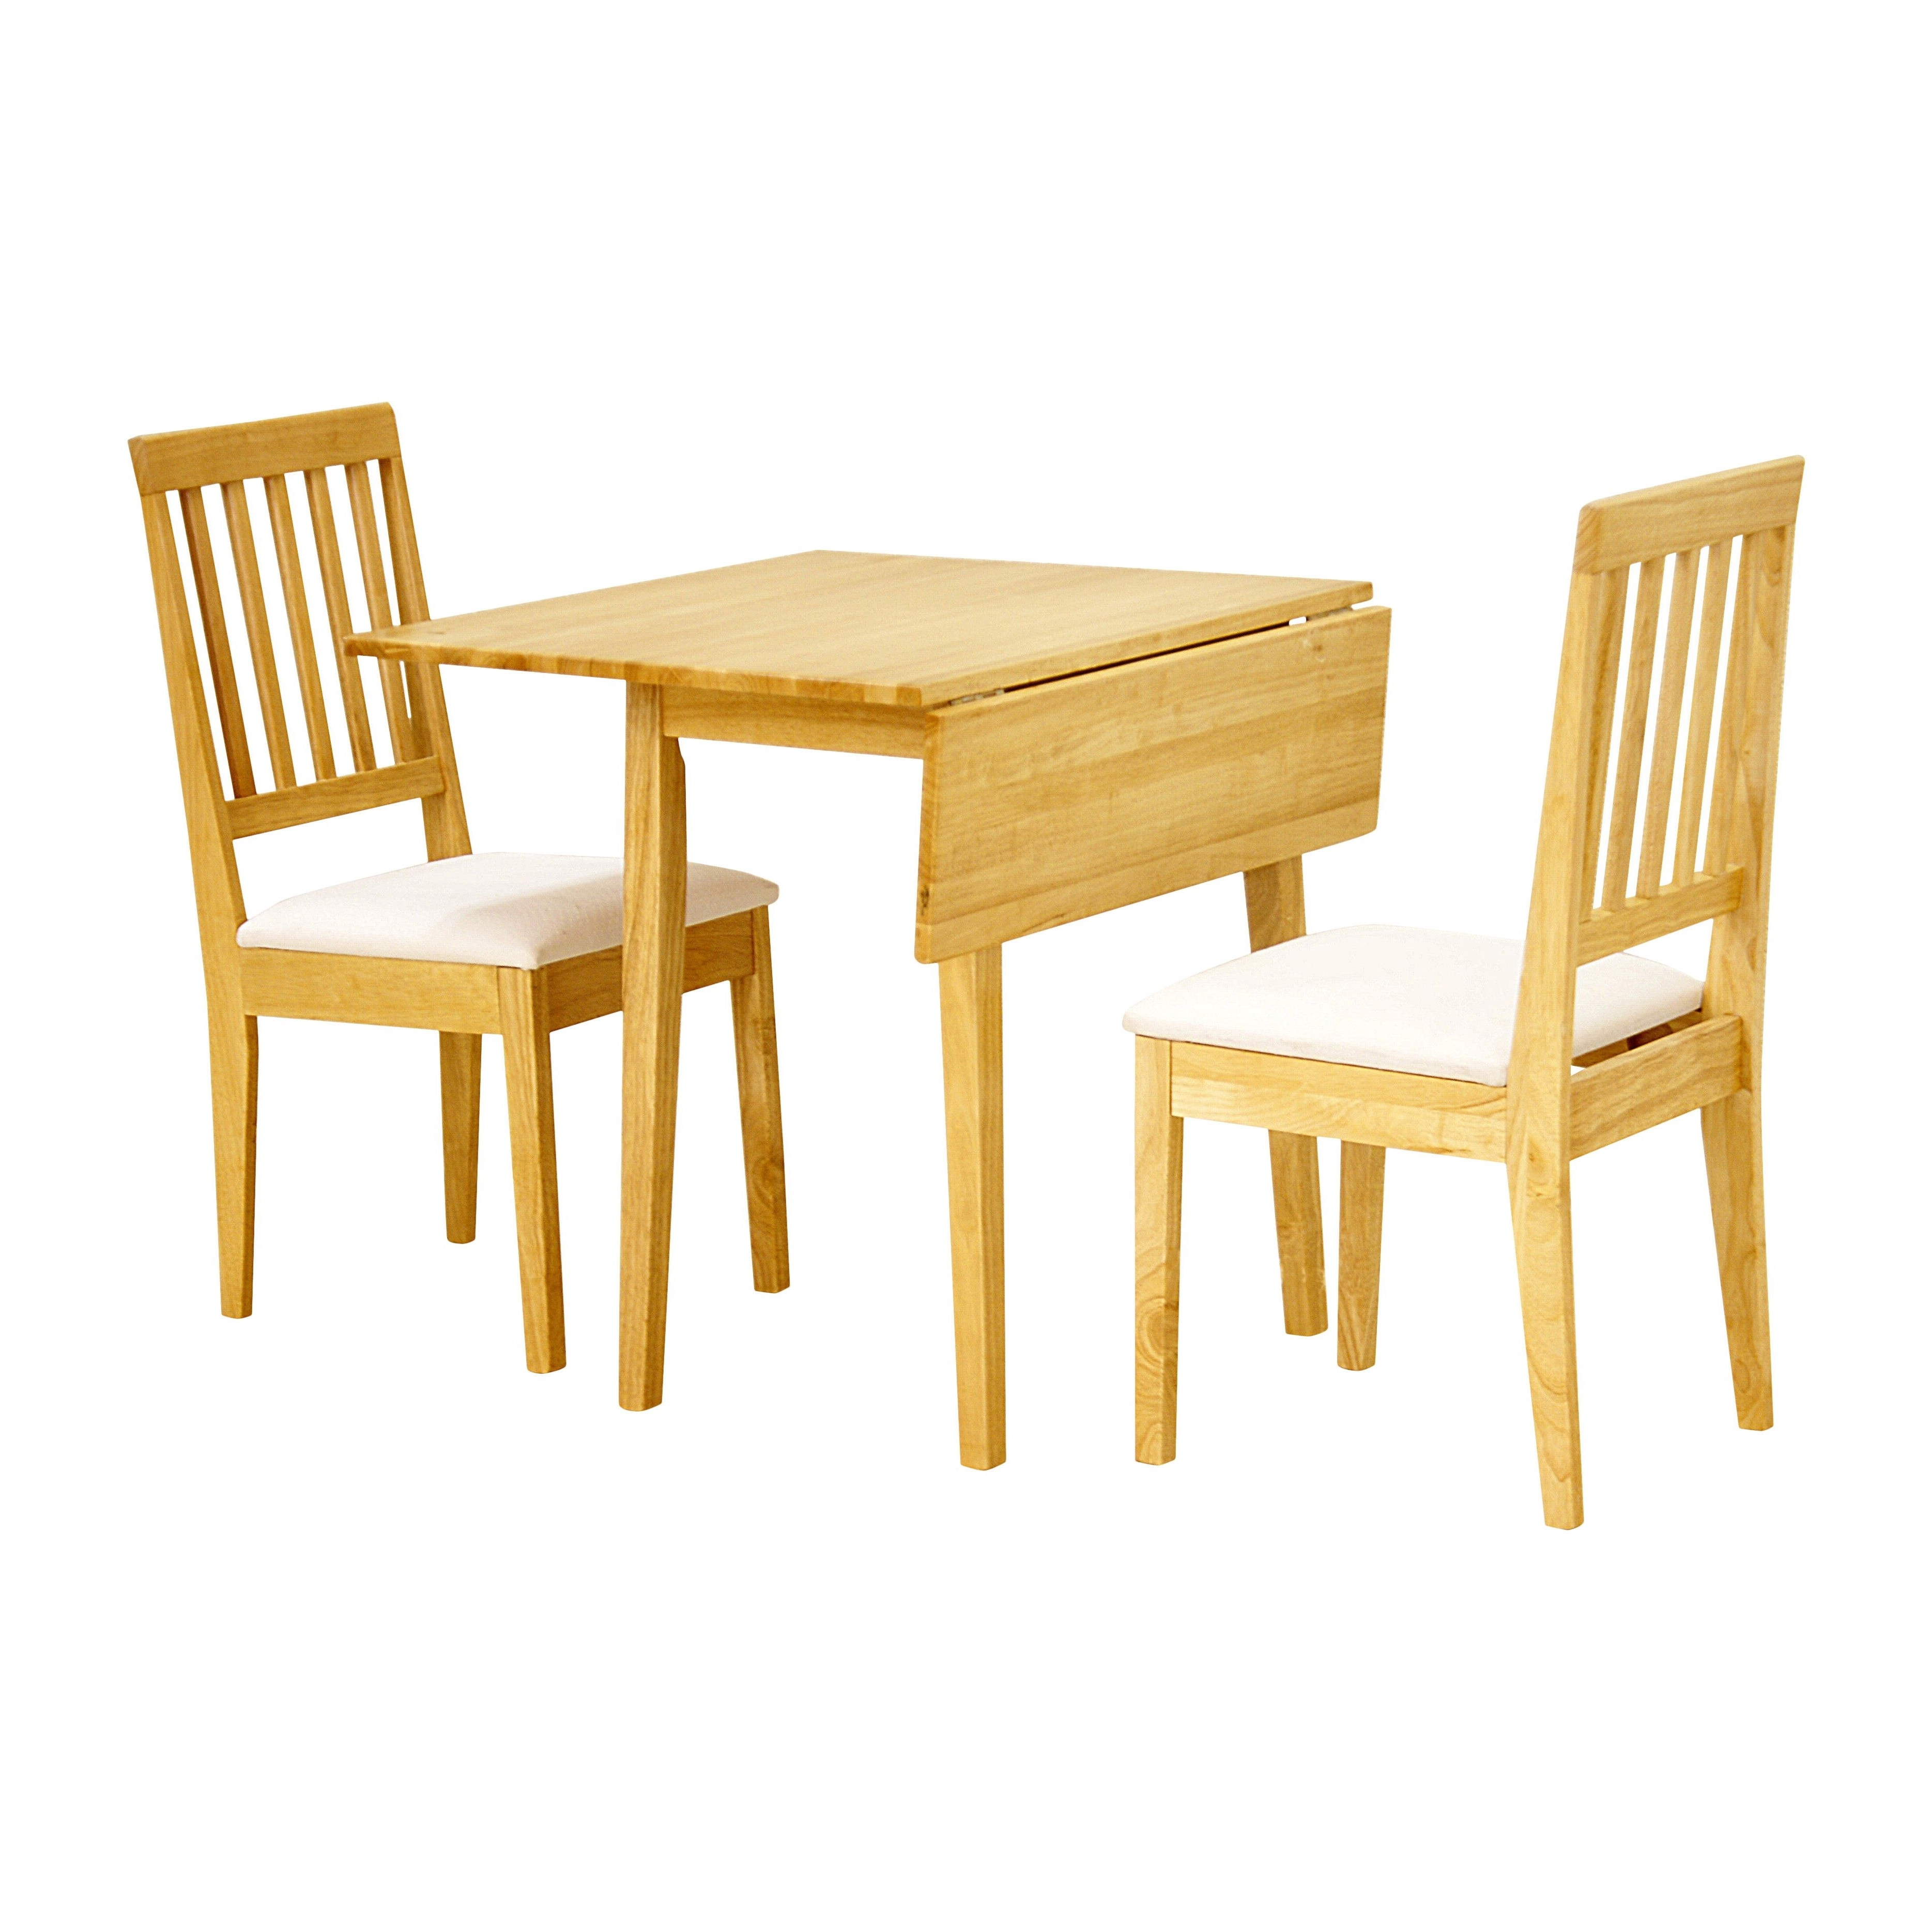 Small Oak Dining Tables In Recent Small Oak Dining Table And 2 Chairs – Go To Chinesefurnitureshop (View 18 of 25)